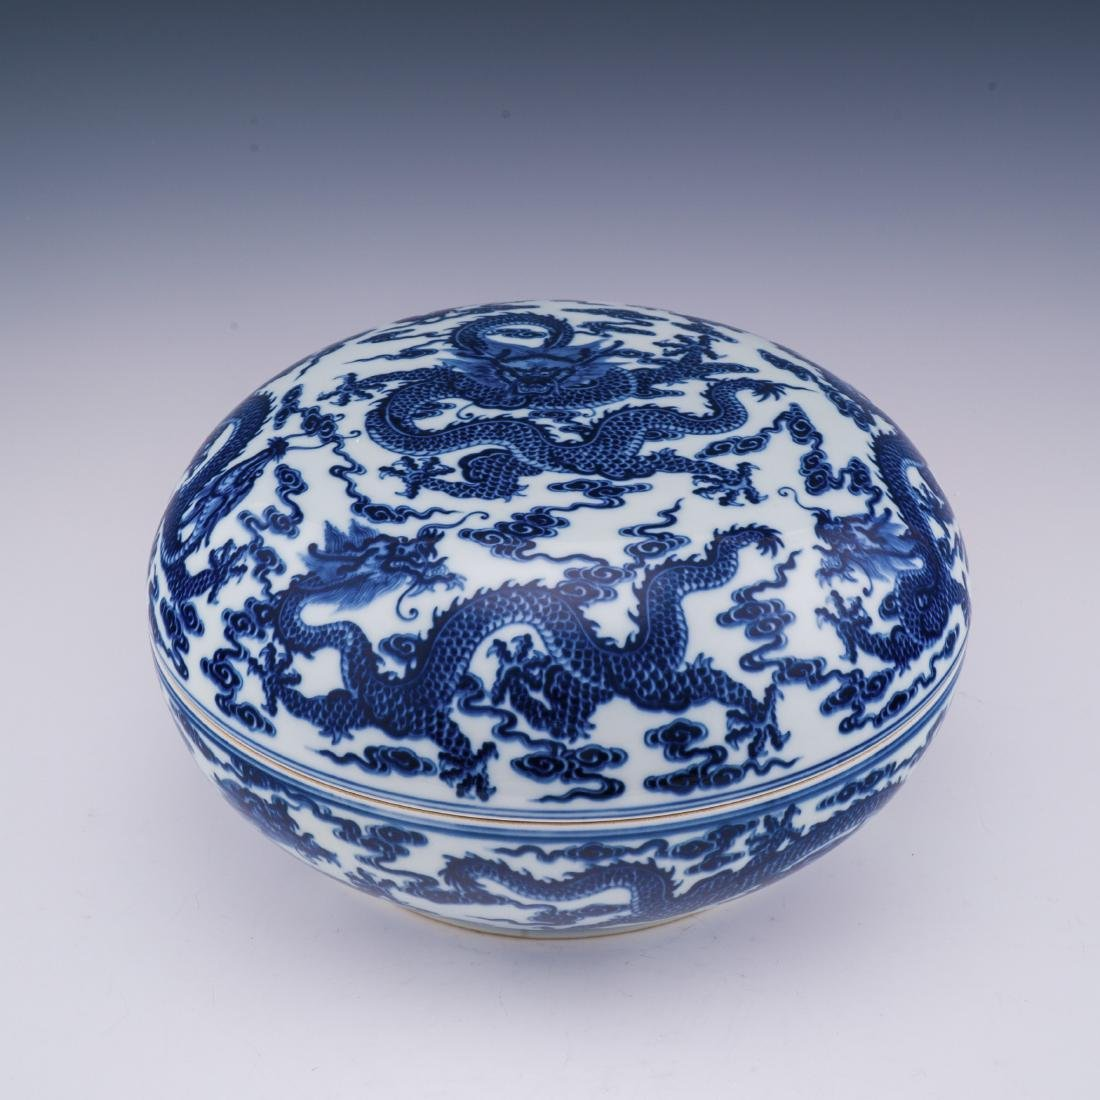 QIANLONG BLUE & WHITE DRAGON GIFT BOX